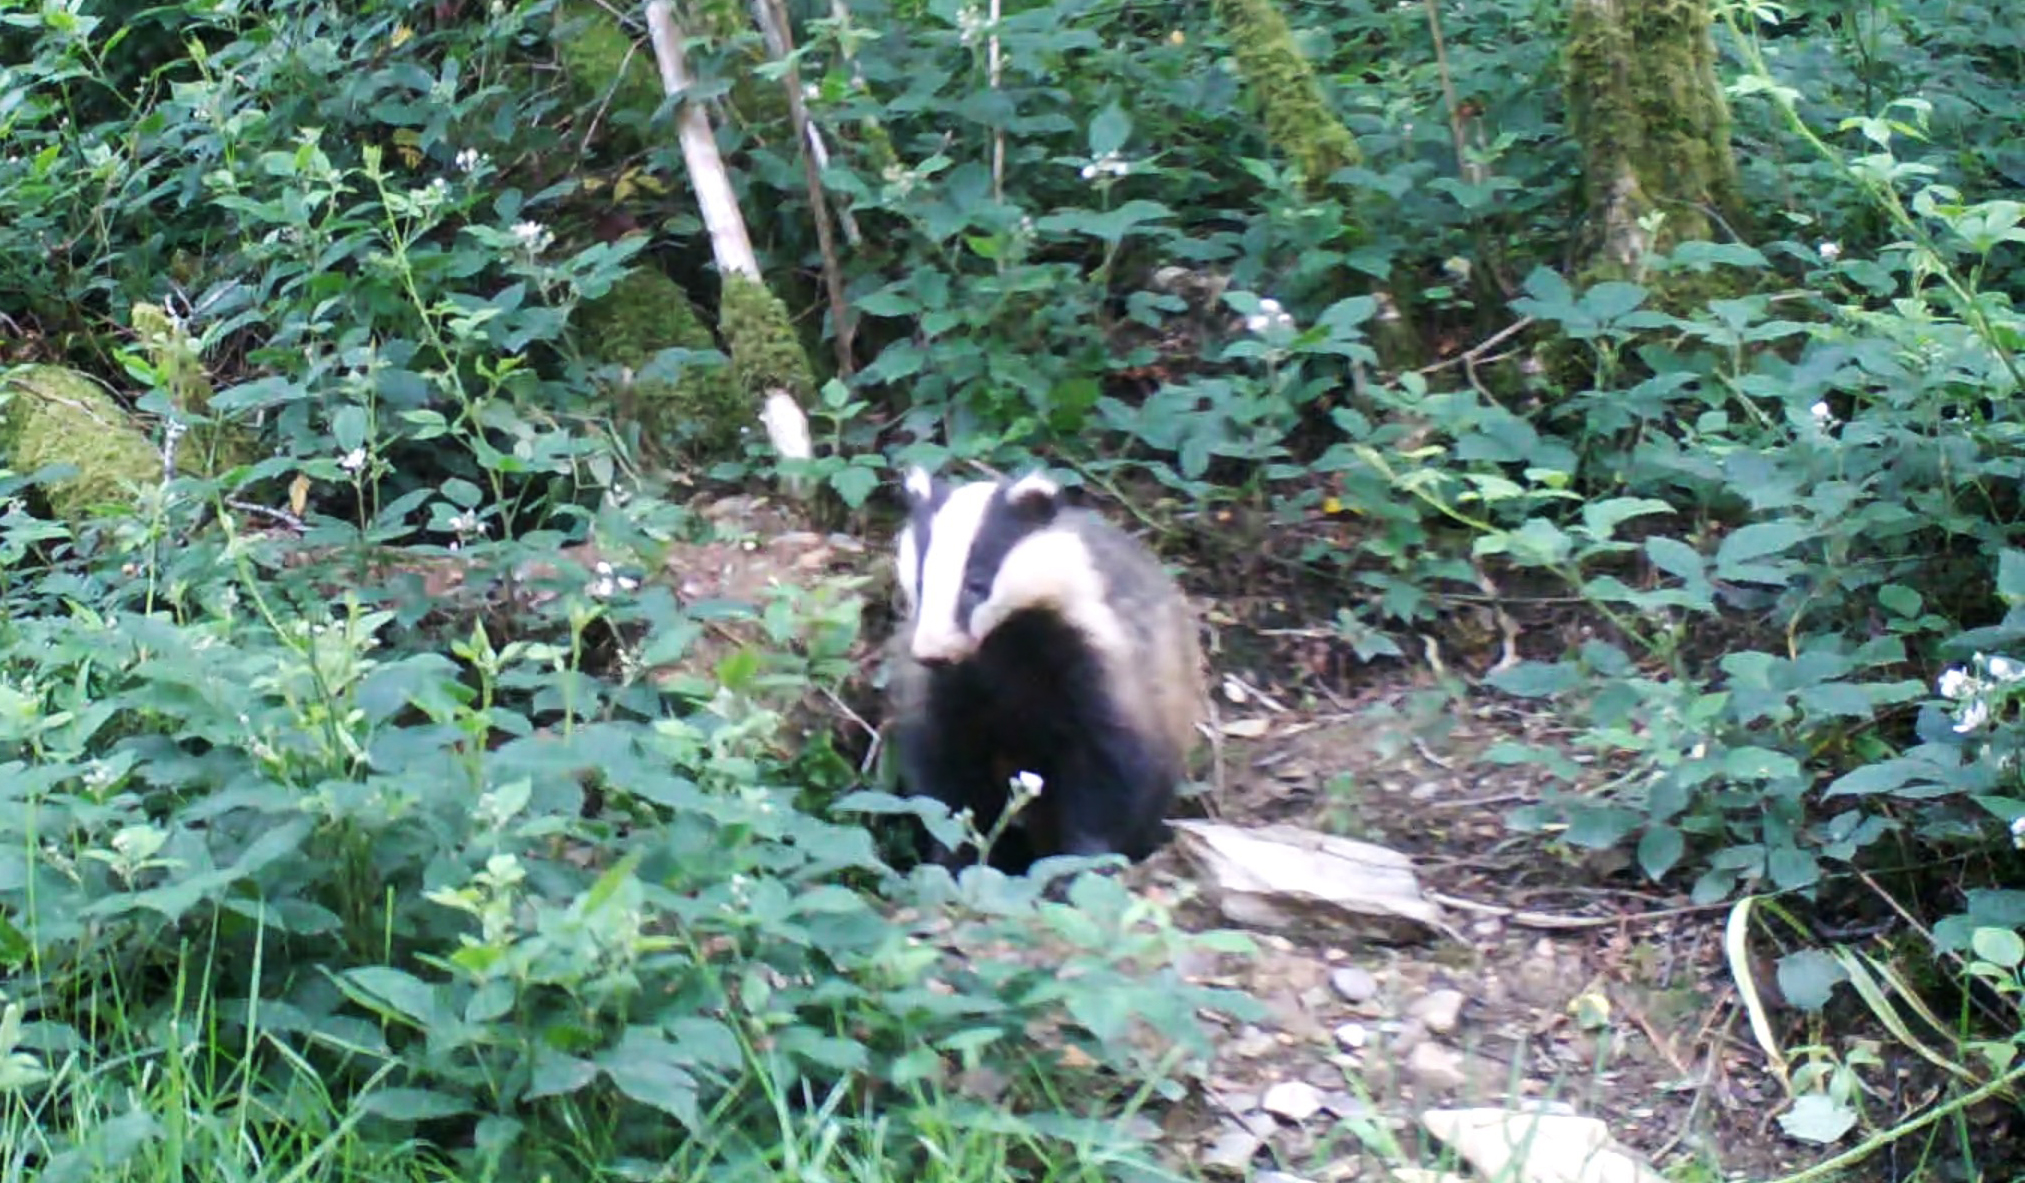 Why do Eurasian badgers live with foxes? Candid Animal Cam spots badgers